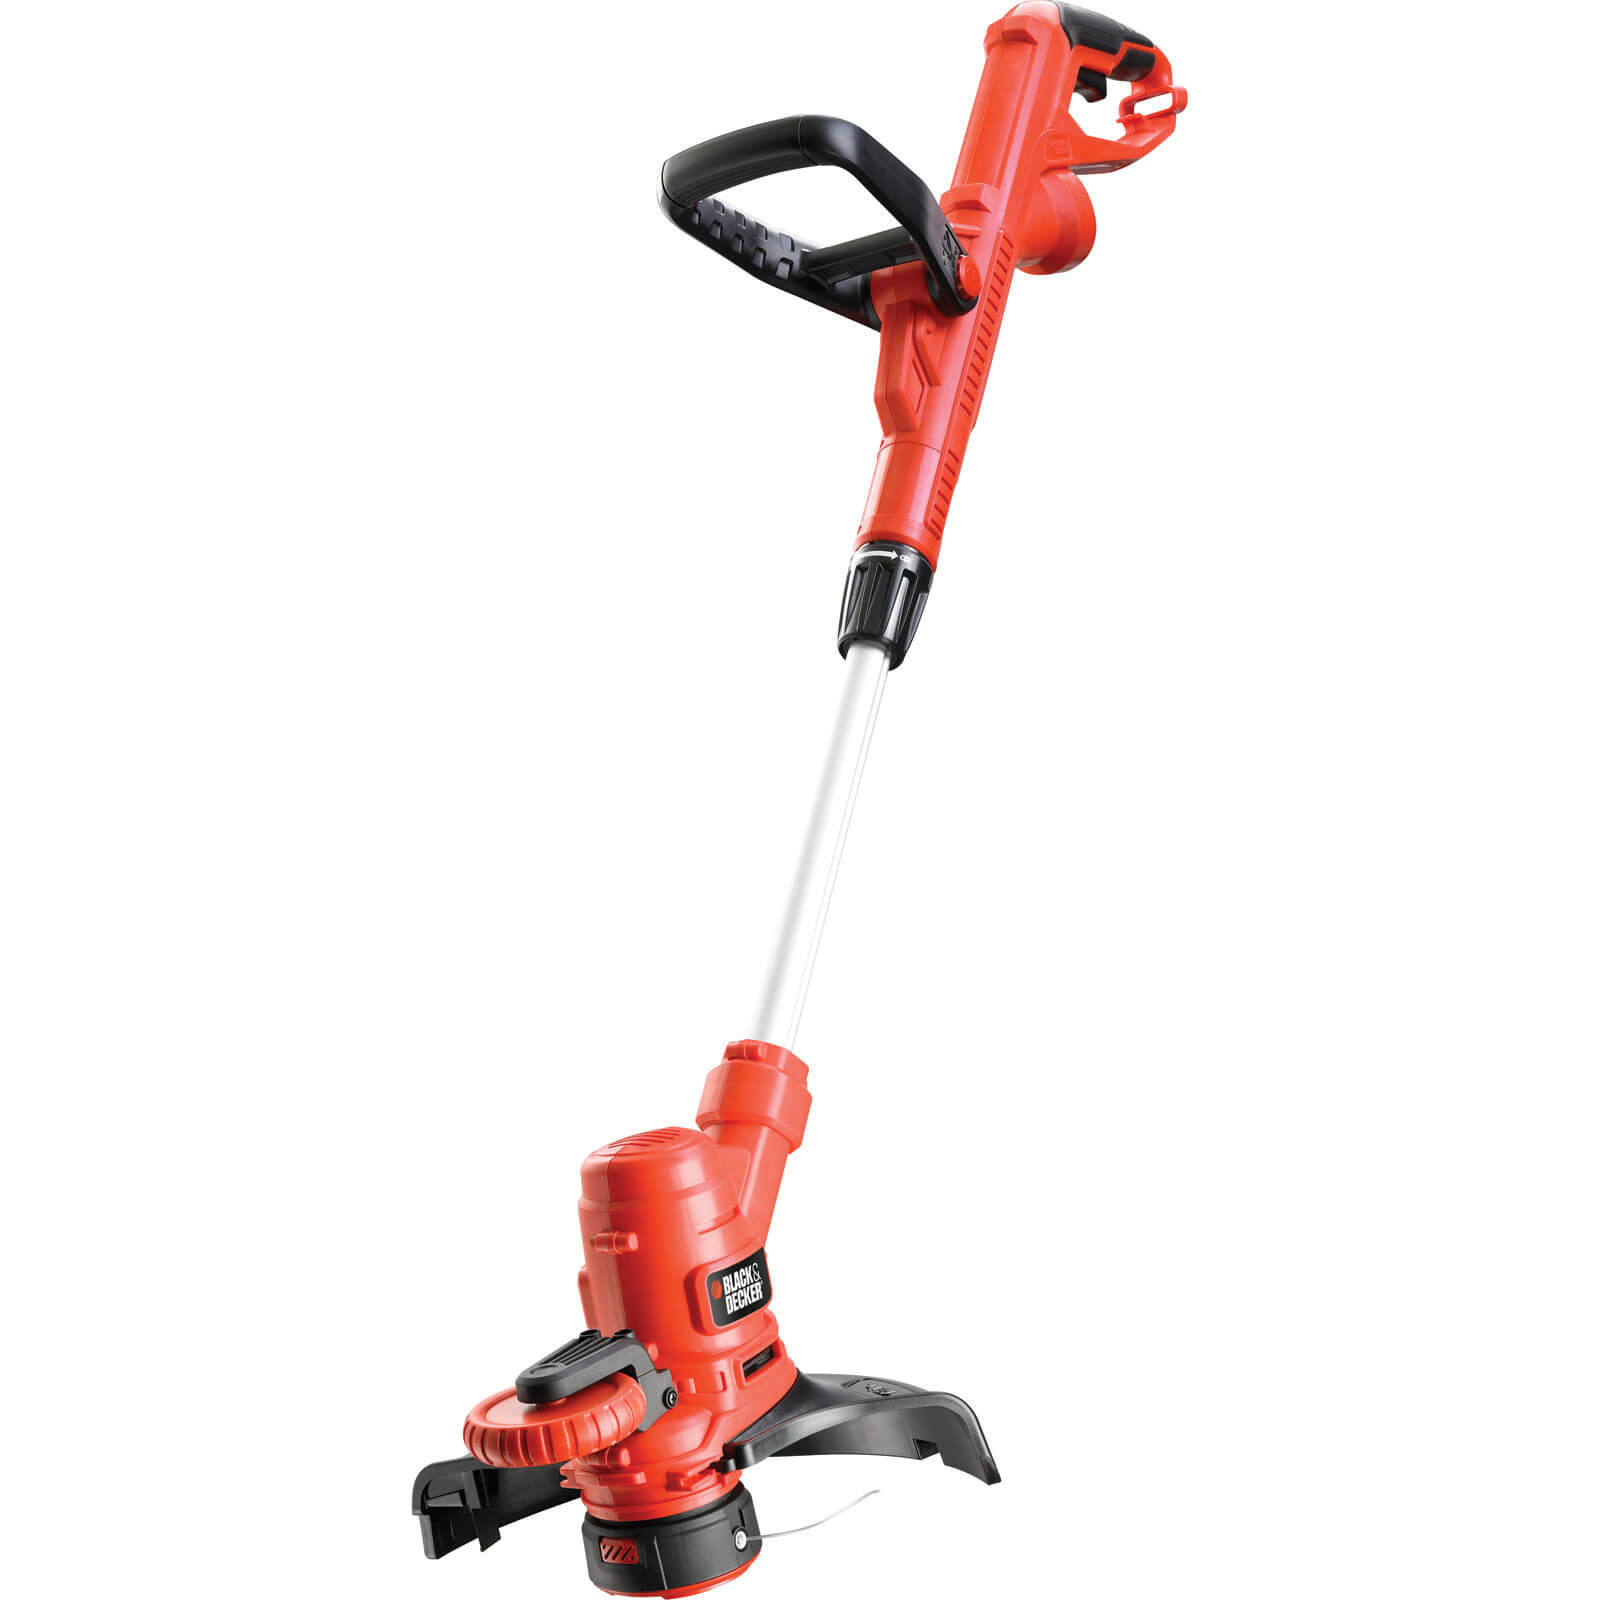 Black & Decker ST5530 Telescopic Grass & Edge Trimmer 300mm Cut Width 550w 240v Compatible with 3 in 1 Mower Plus FREE Spare Spool & Line Worth £5.95